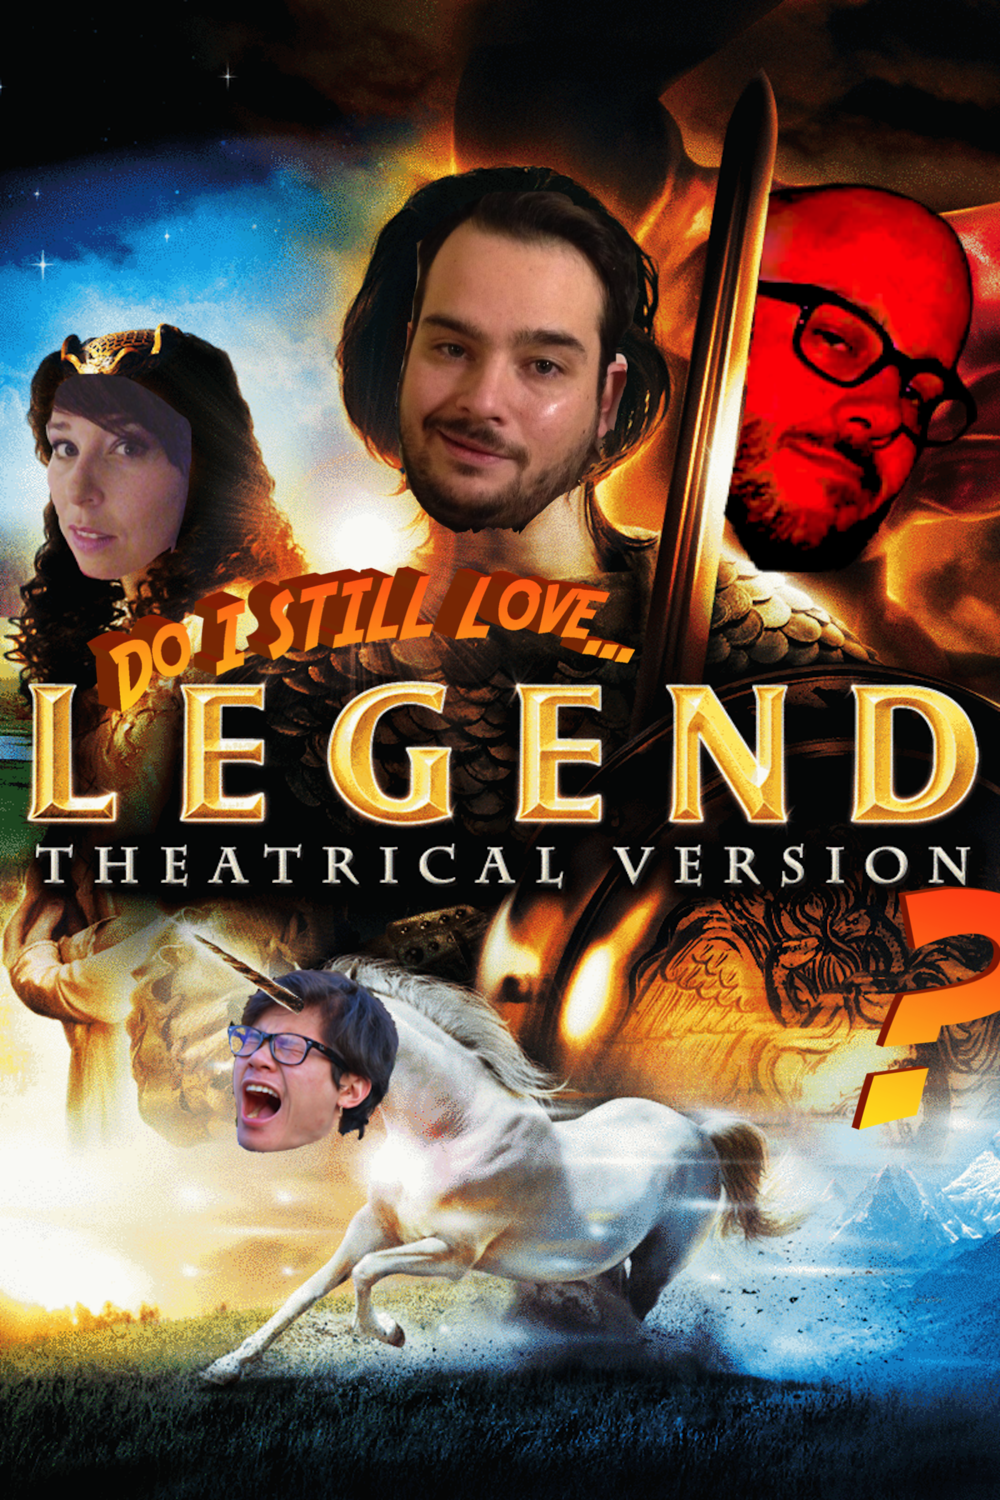 Do I Still Love Legend